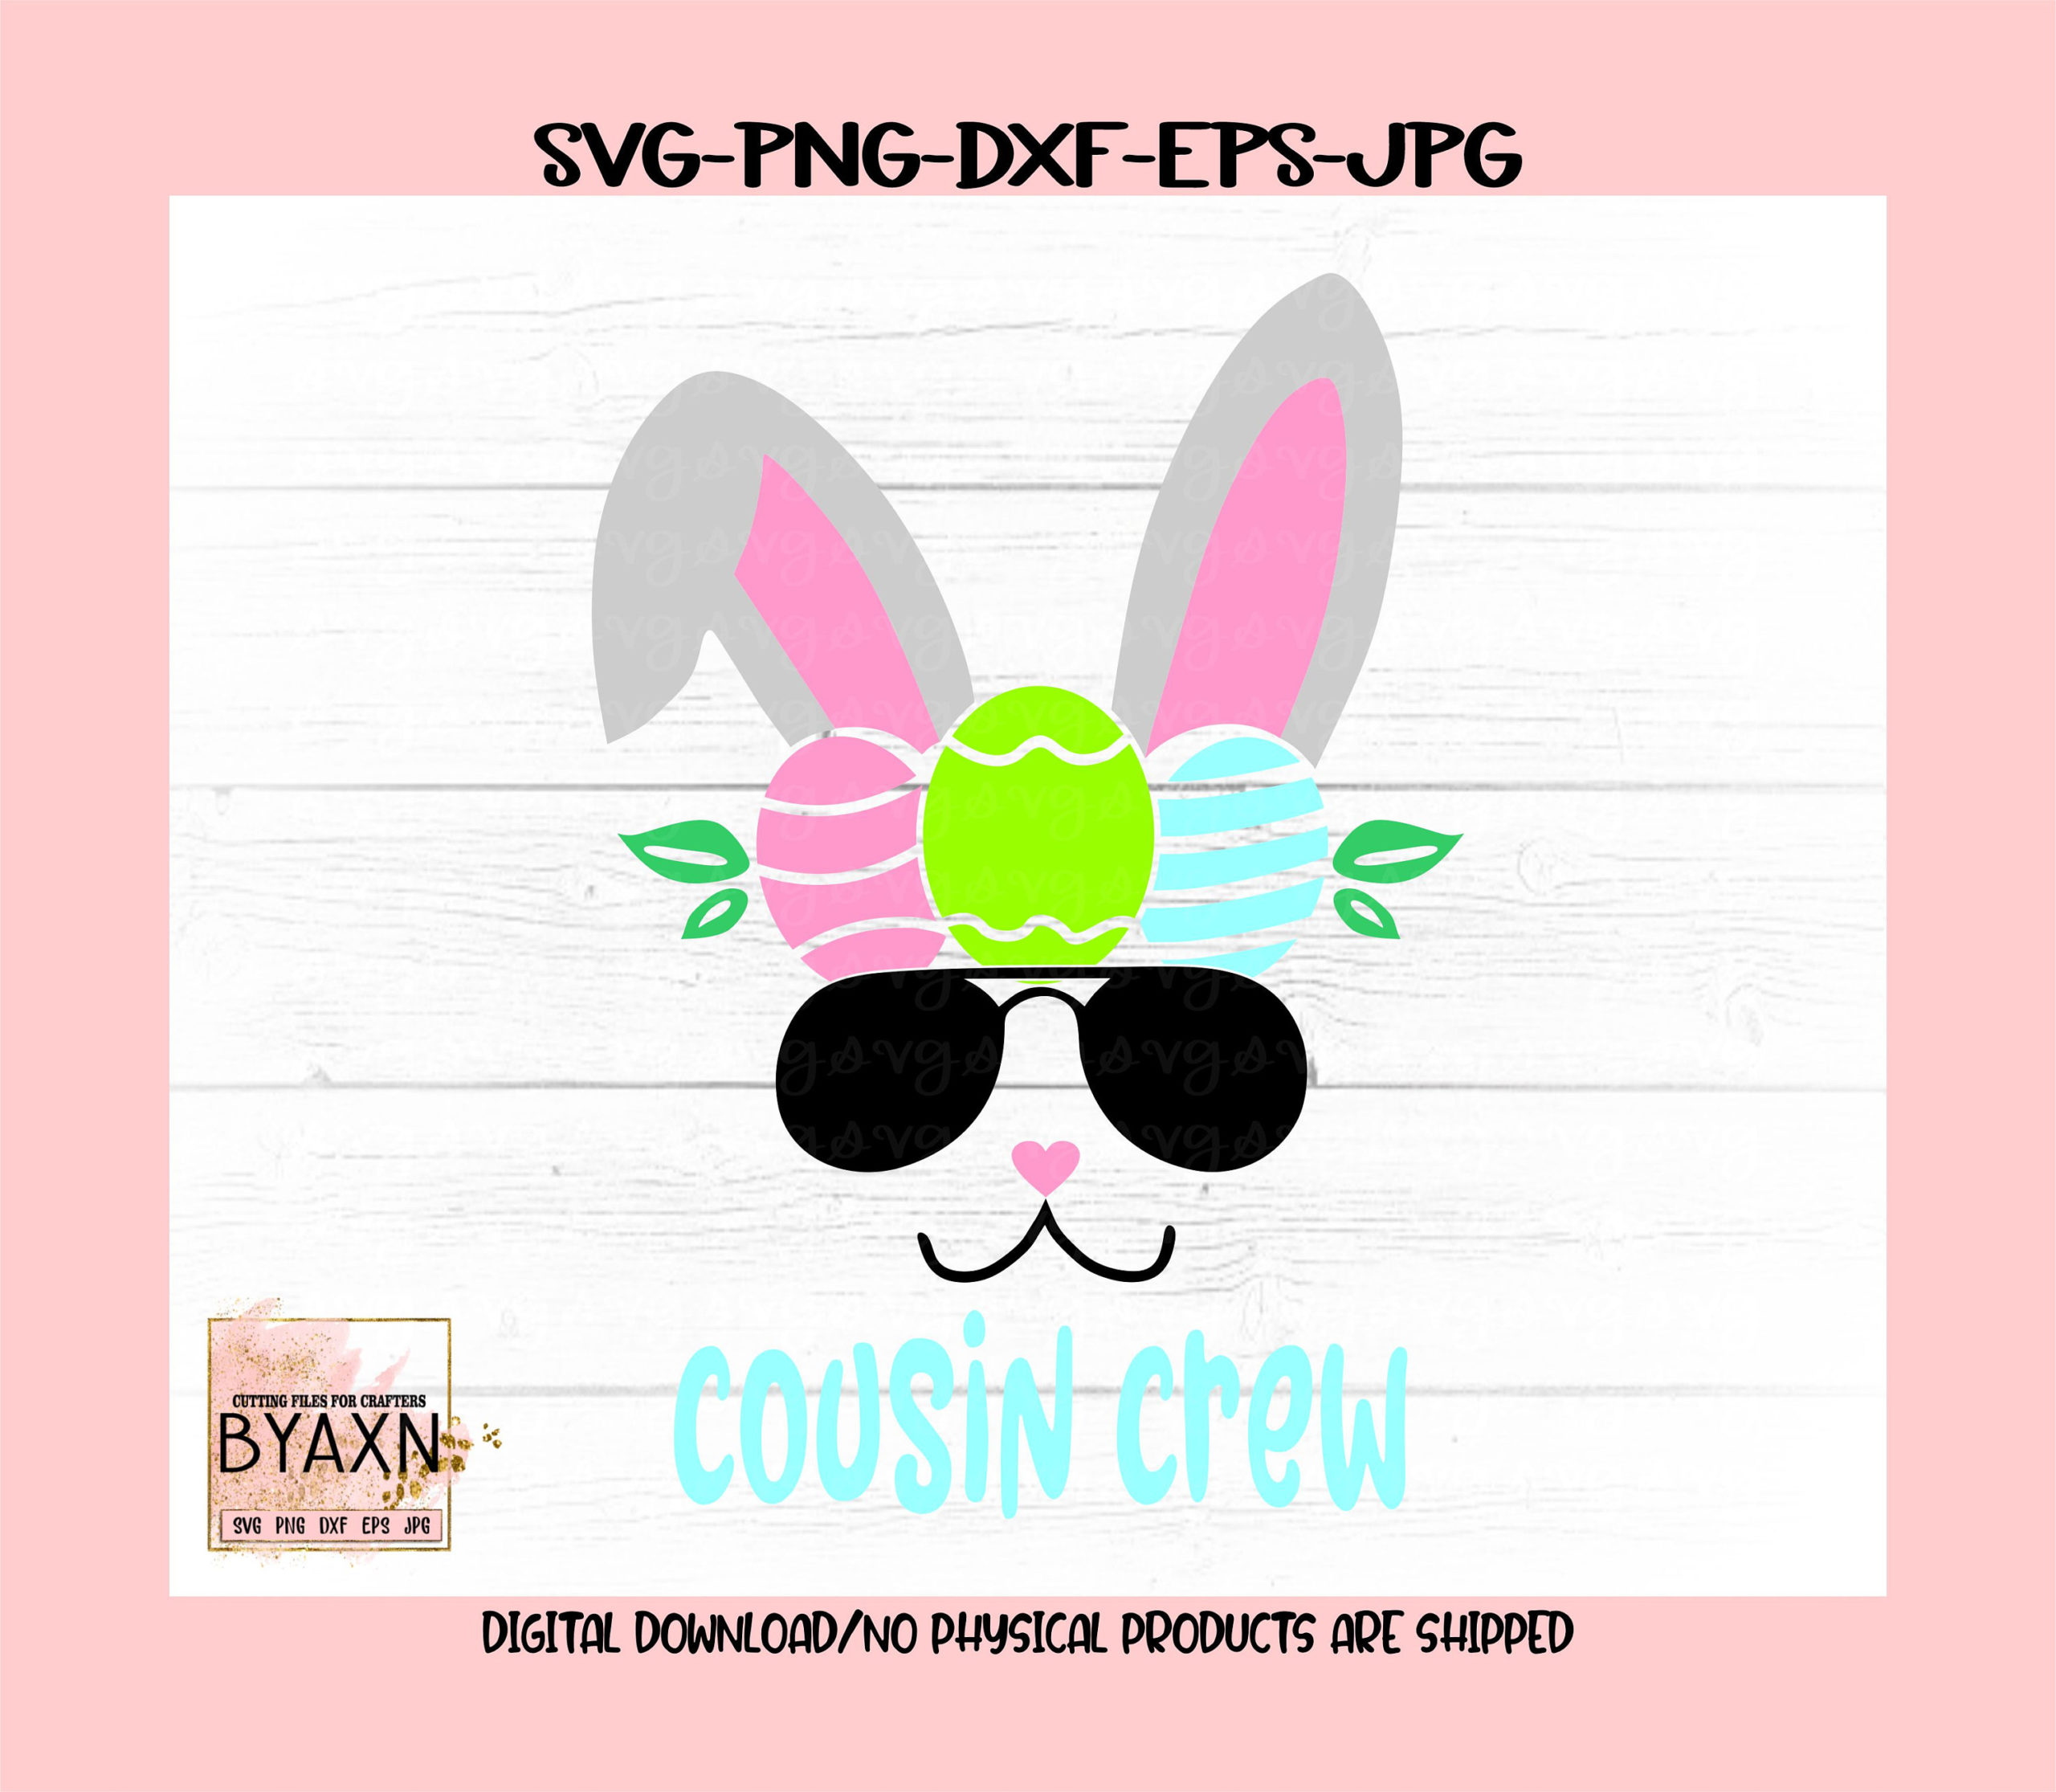 Easter-svg-cousin-crew-bunny-svg-easter-bunny-svg-cousin-crew-svg-bunny-svg-easter-svg-designs-easter-cut-file-easter-cricut-svg-605148bf